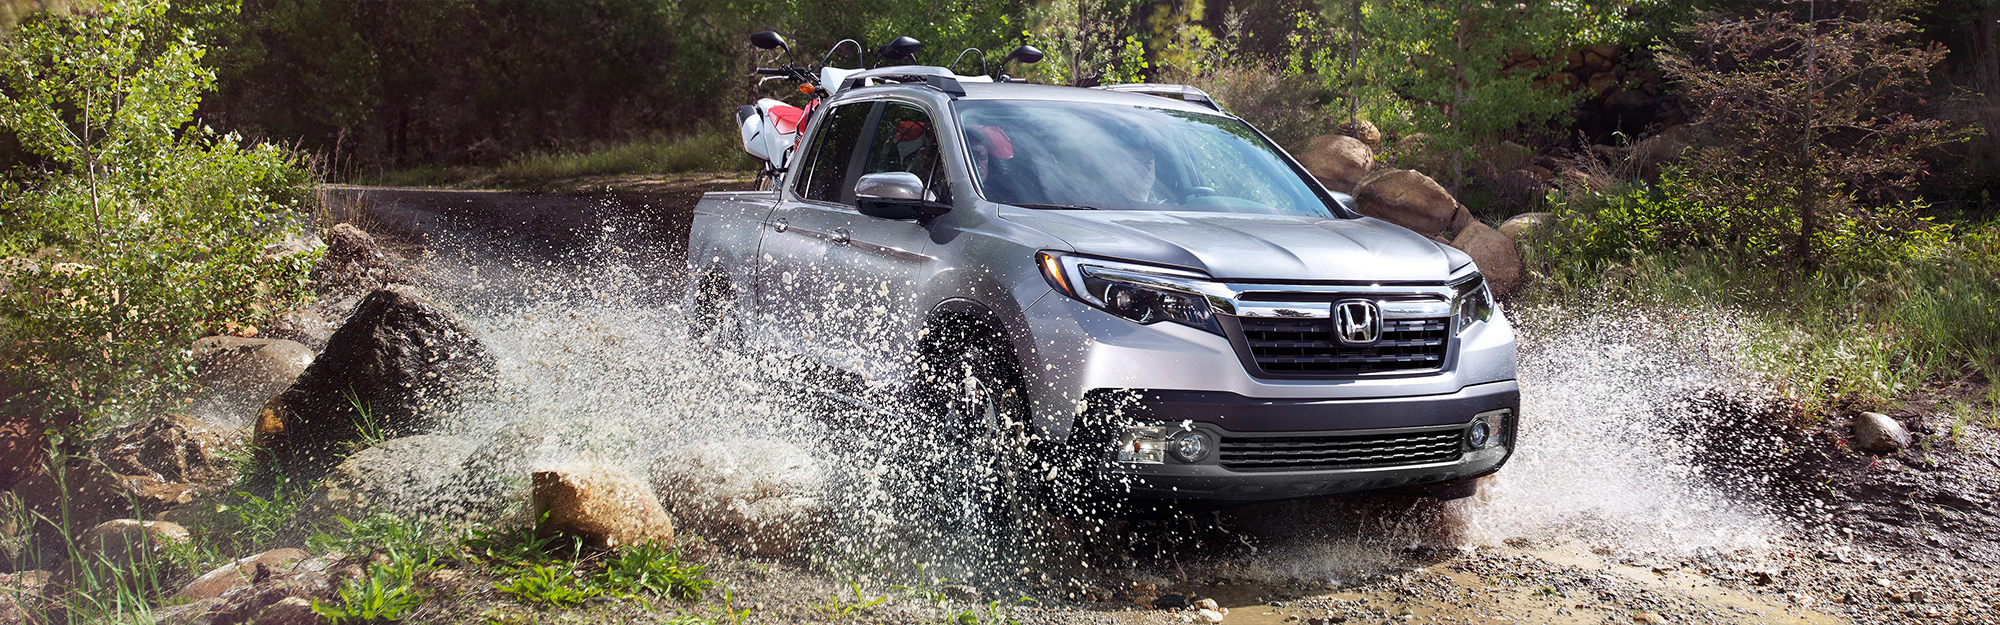 2019 Honda Ridgeline driving through water